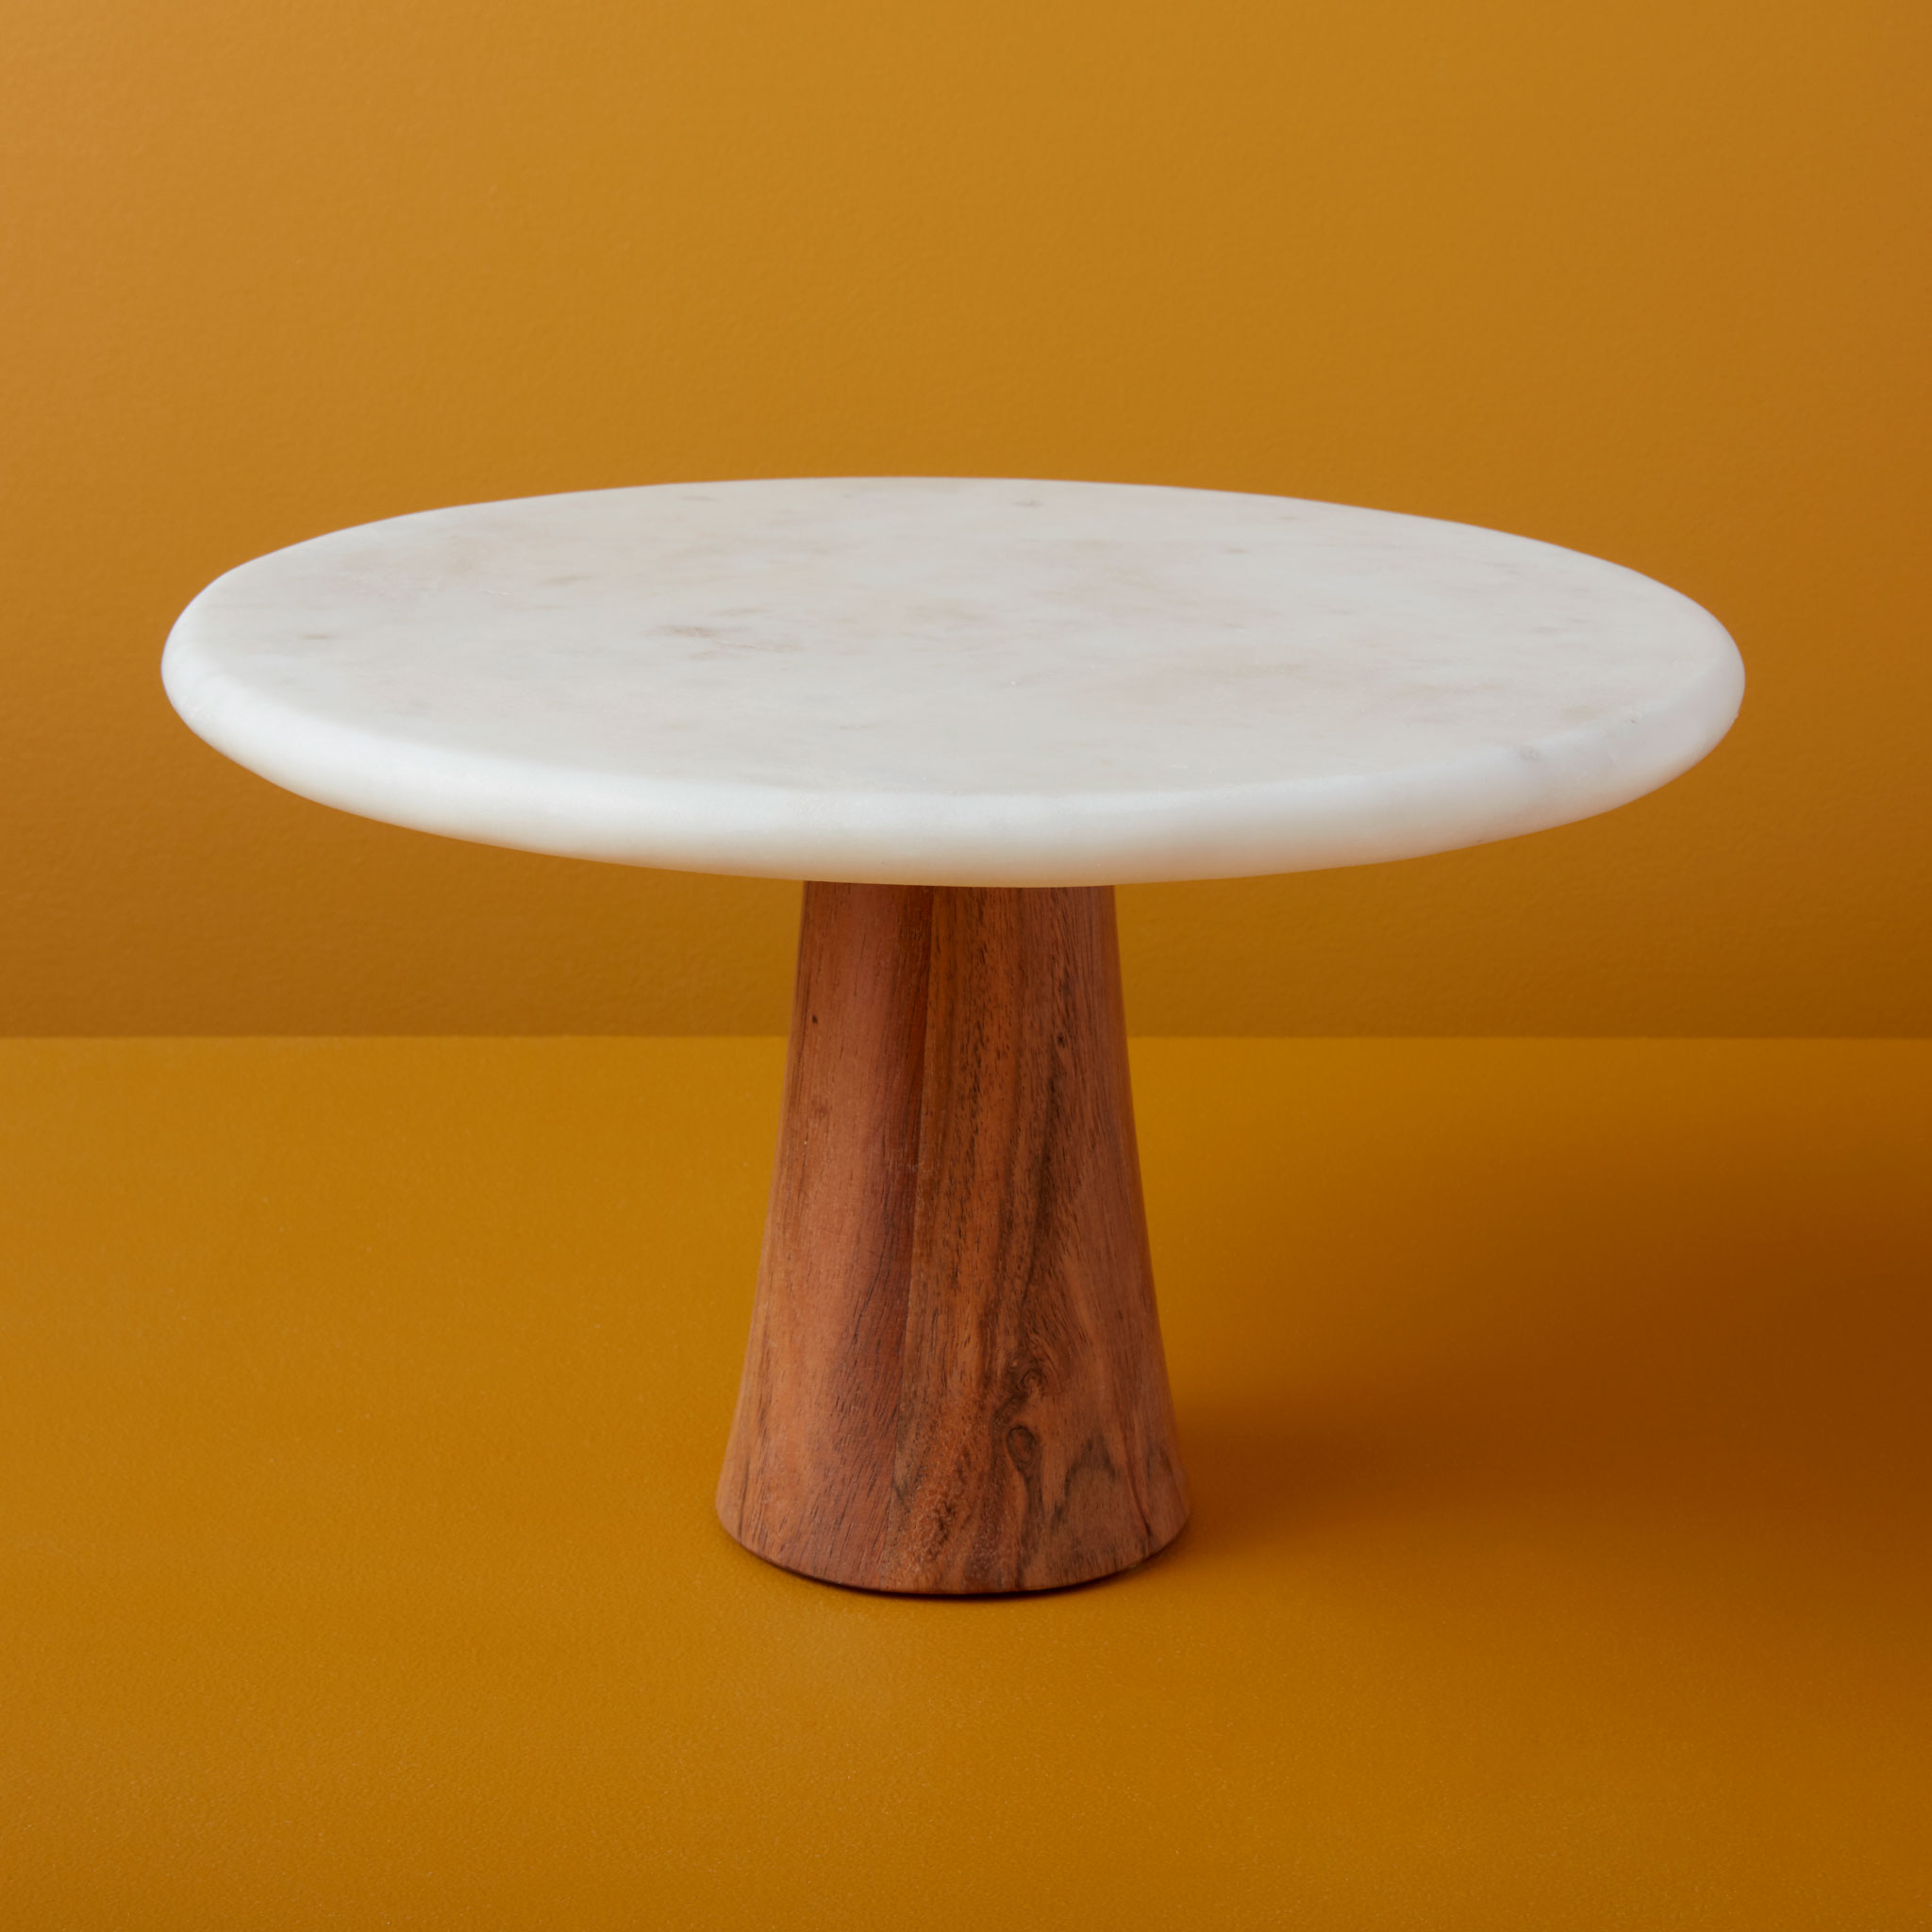 Be-Home_White-Marble-and-Wood-Cake-Stand-Large_58-33